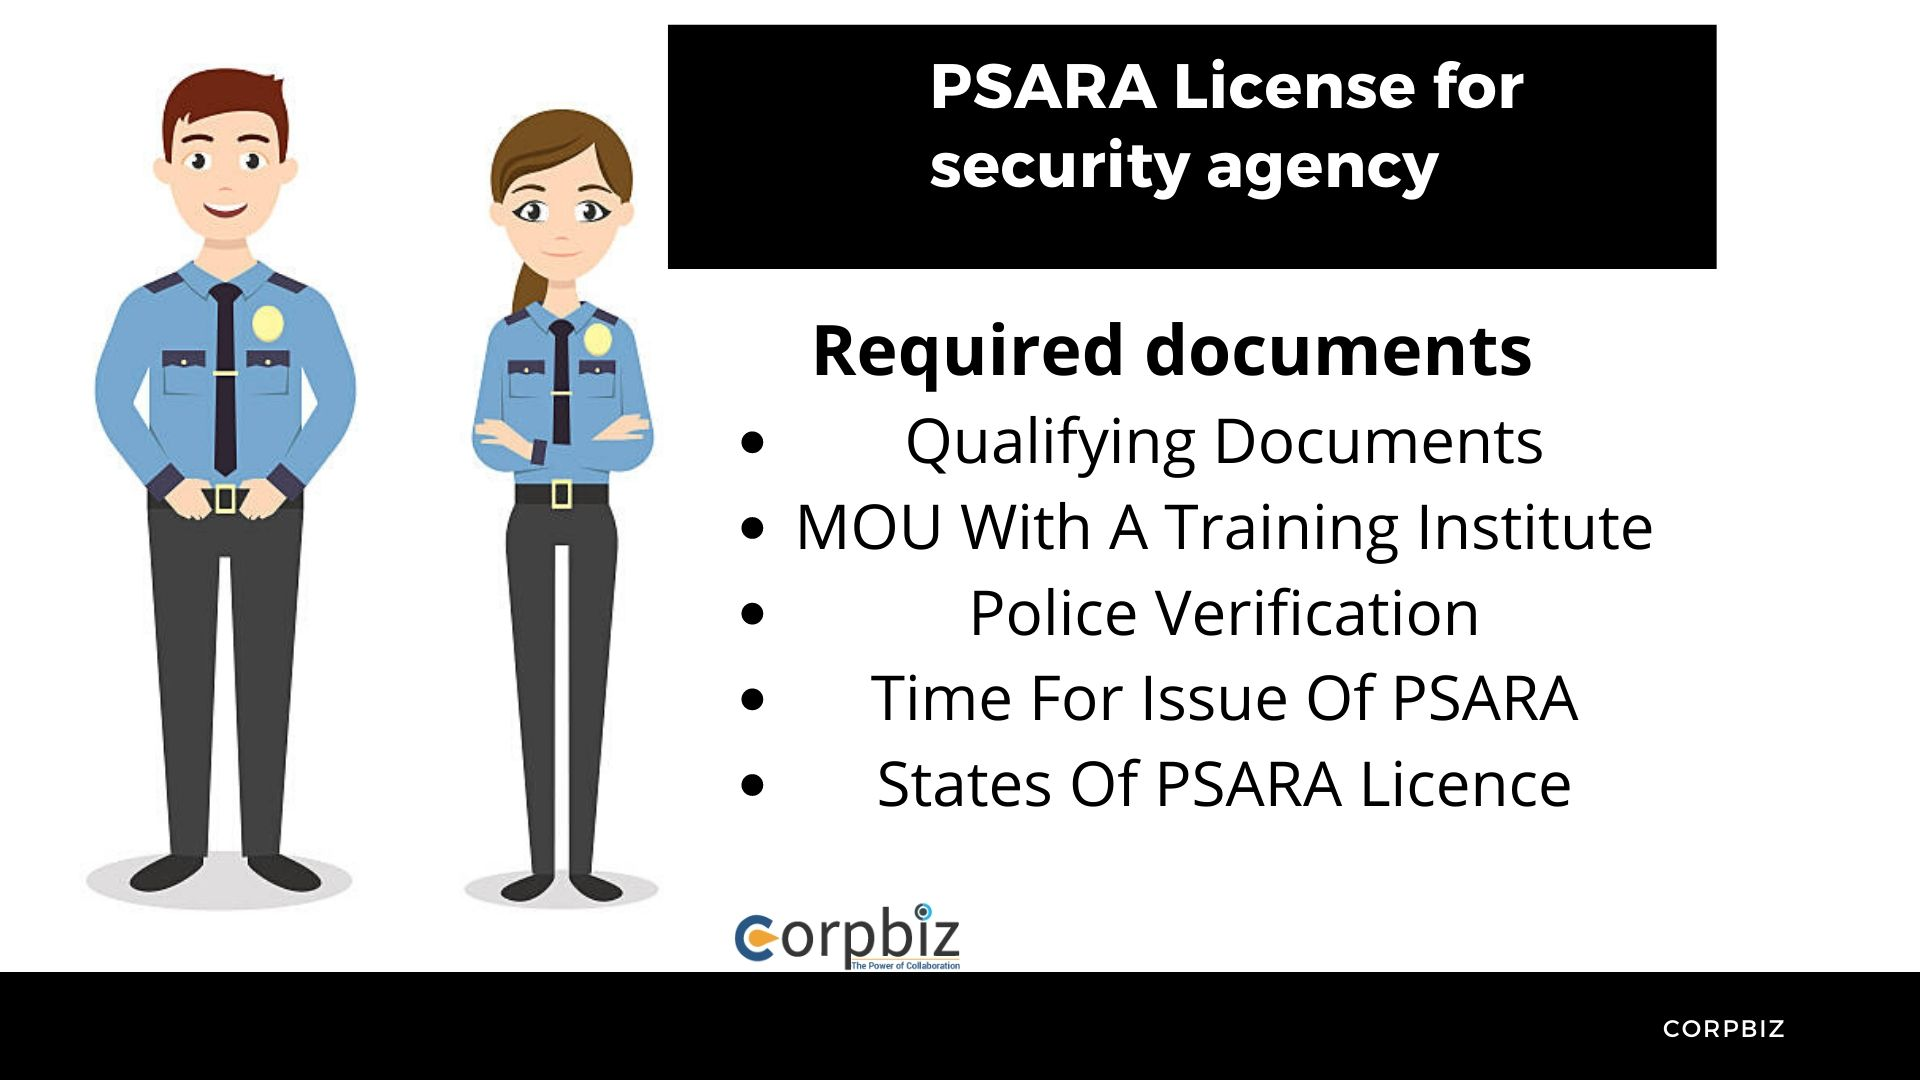 PSARA License - Mandatory for every private security agency